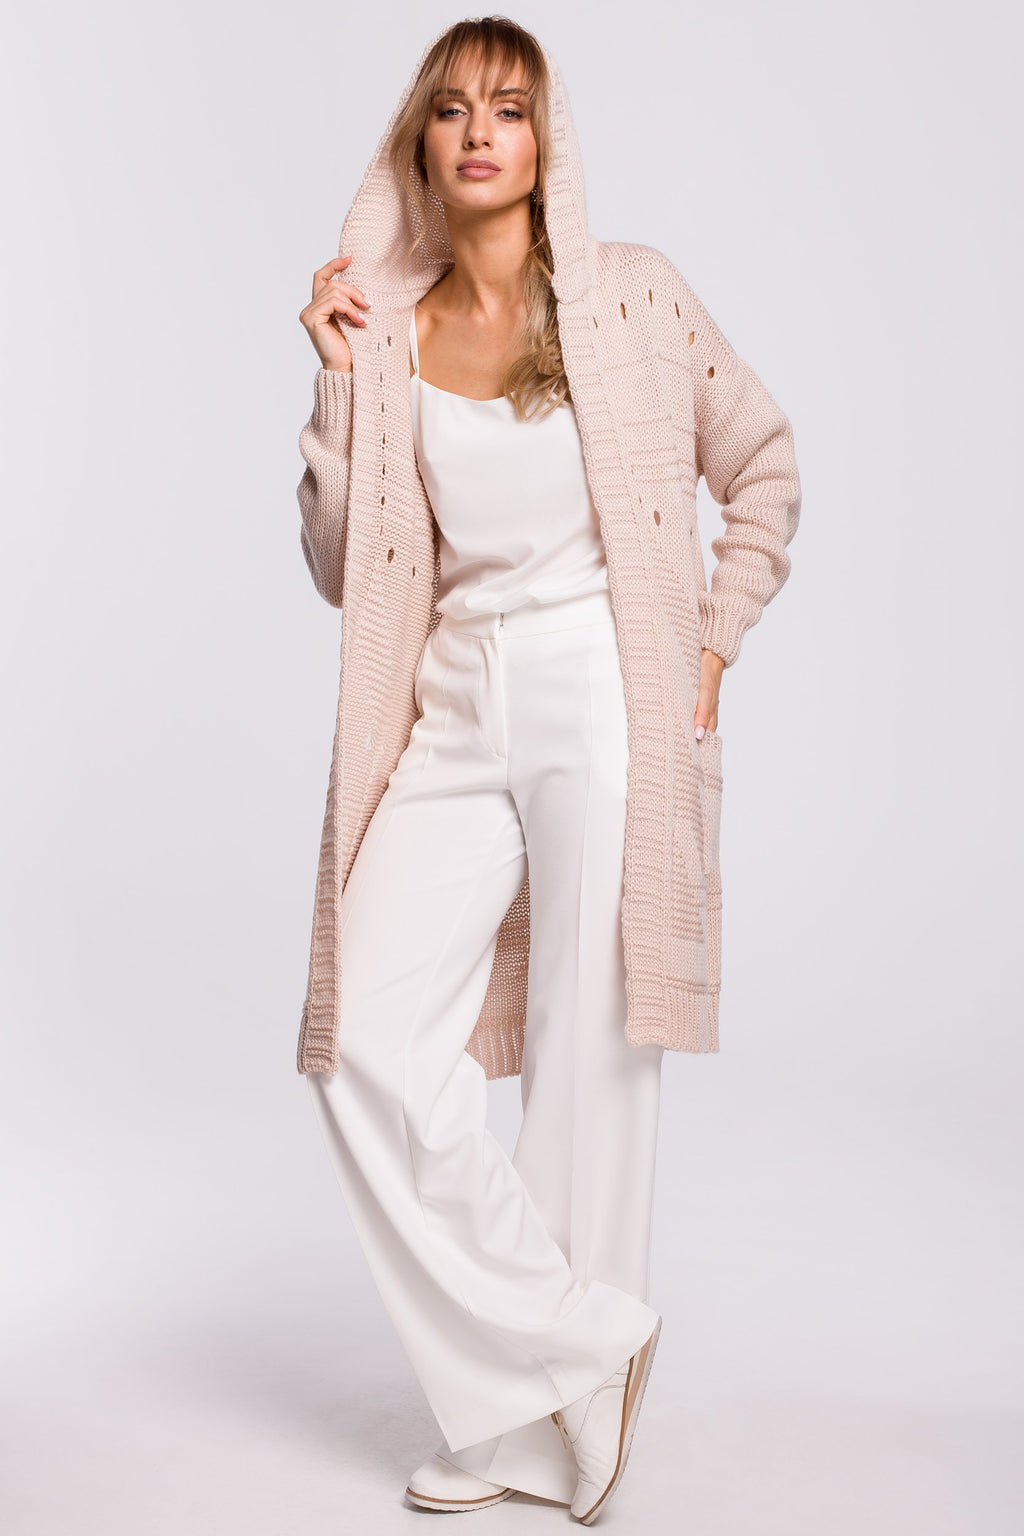 Powder Pink Long Cardigan With A Hood - So Chic Boutique